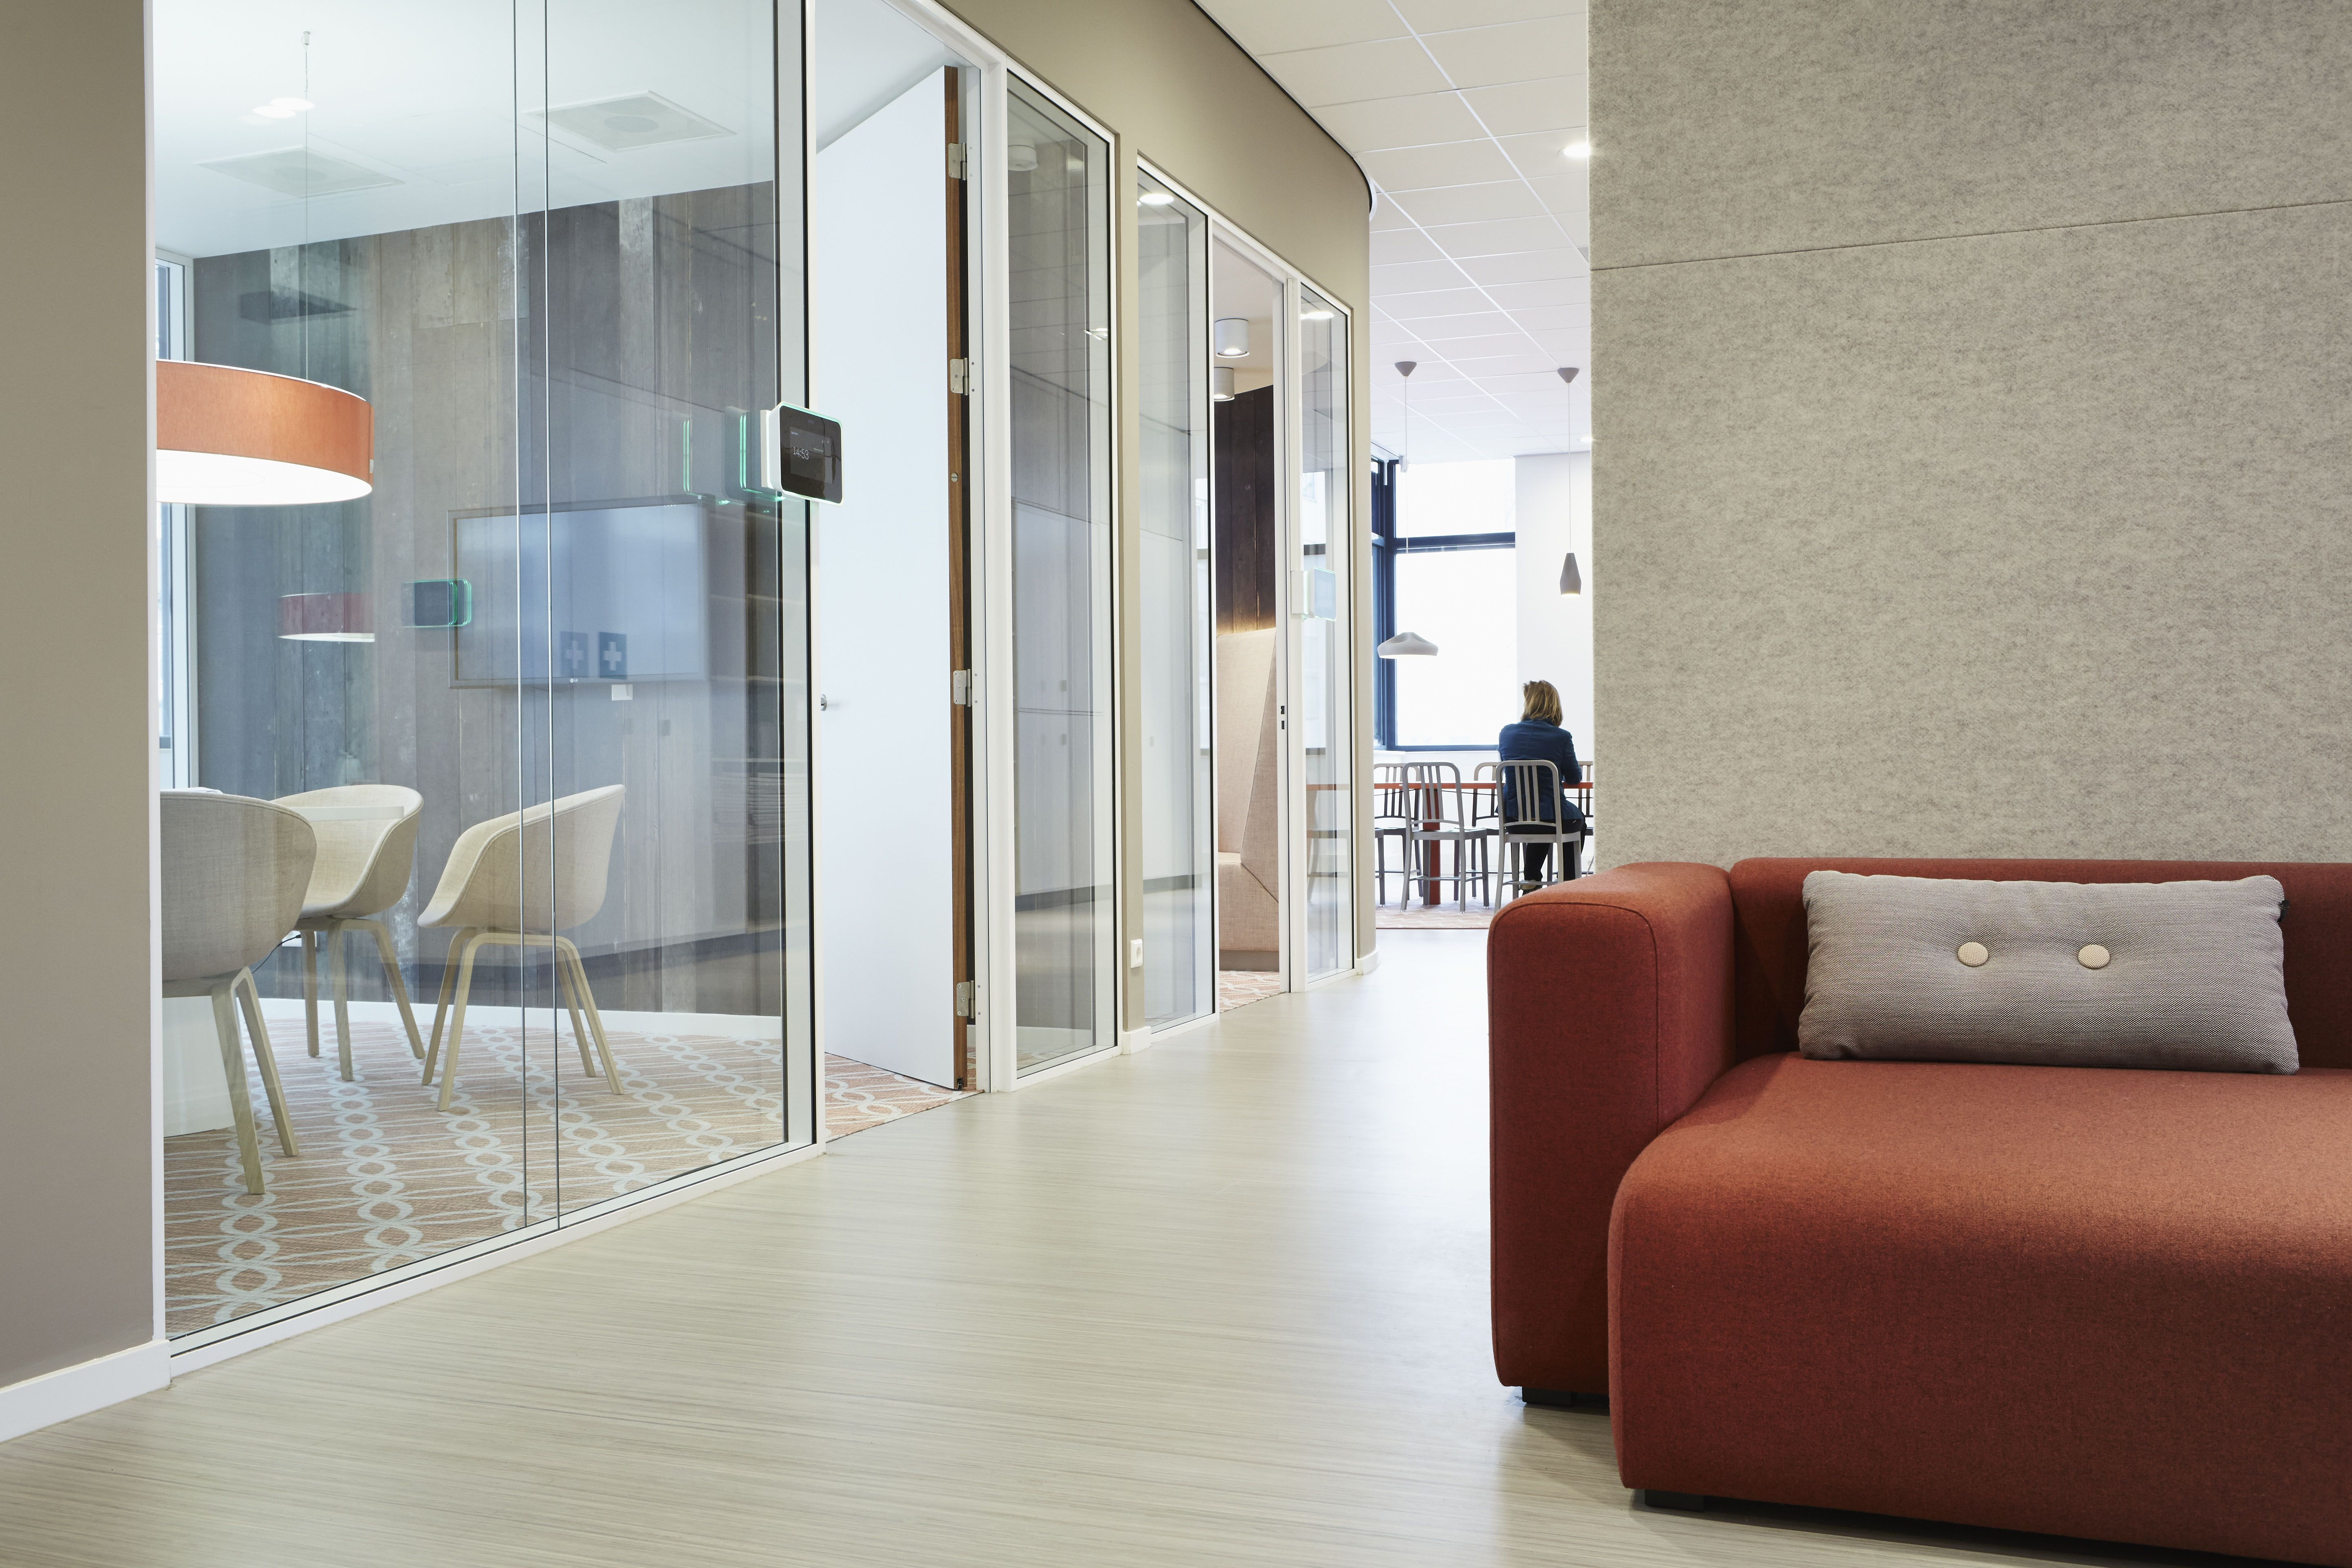 ex interiors created a friendly and appealing office space with